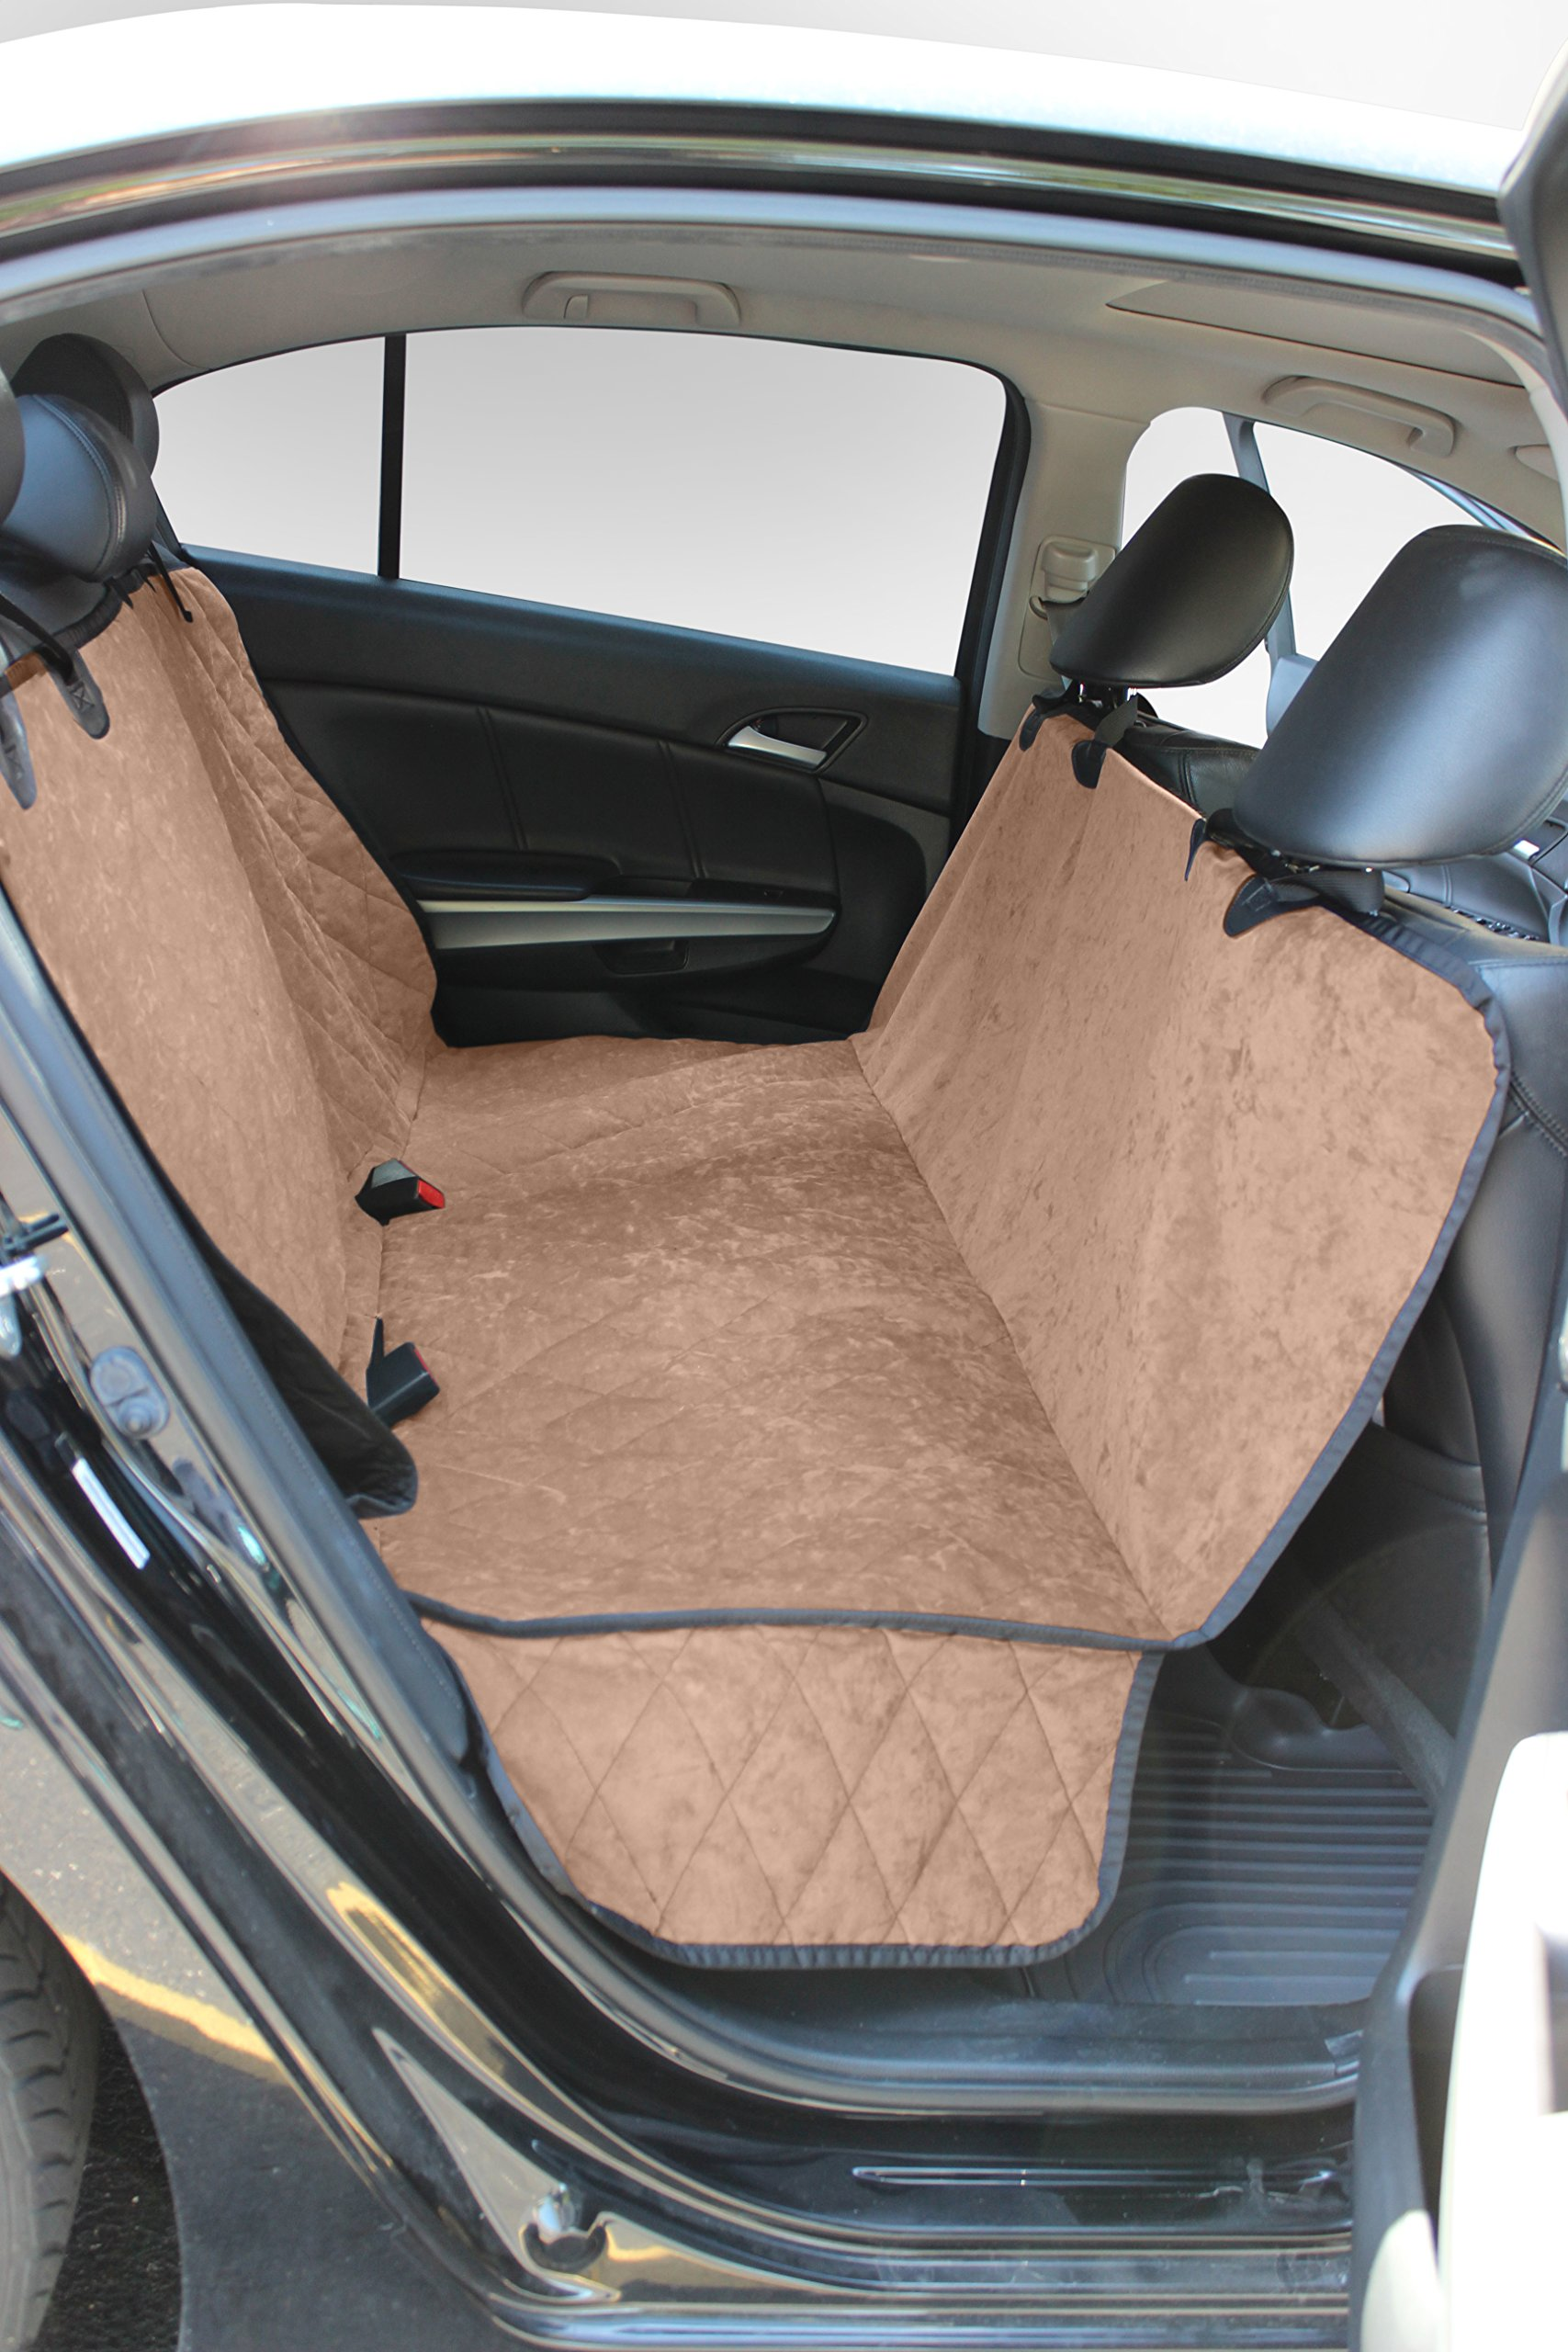 Buddyrest Smart Suede Hammock Style Seat Protector, Iced Mocha Color, Crypton Suede Performance Fabric, Stays Clean, Repels Odors and Rarely Needs Washing, Made in the USA, Infused With Kevlar Thread